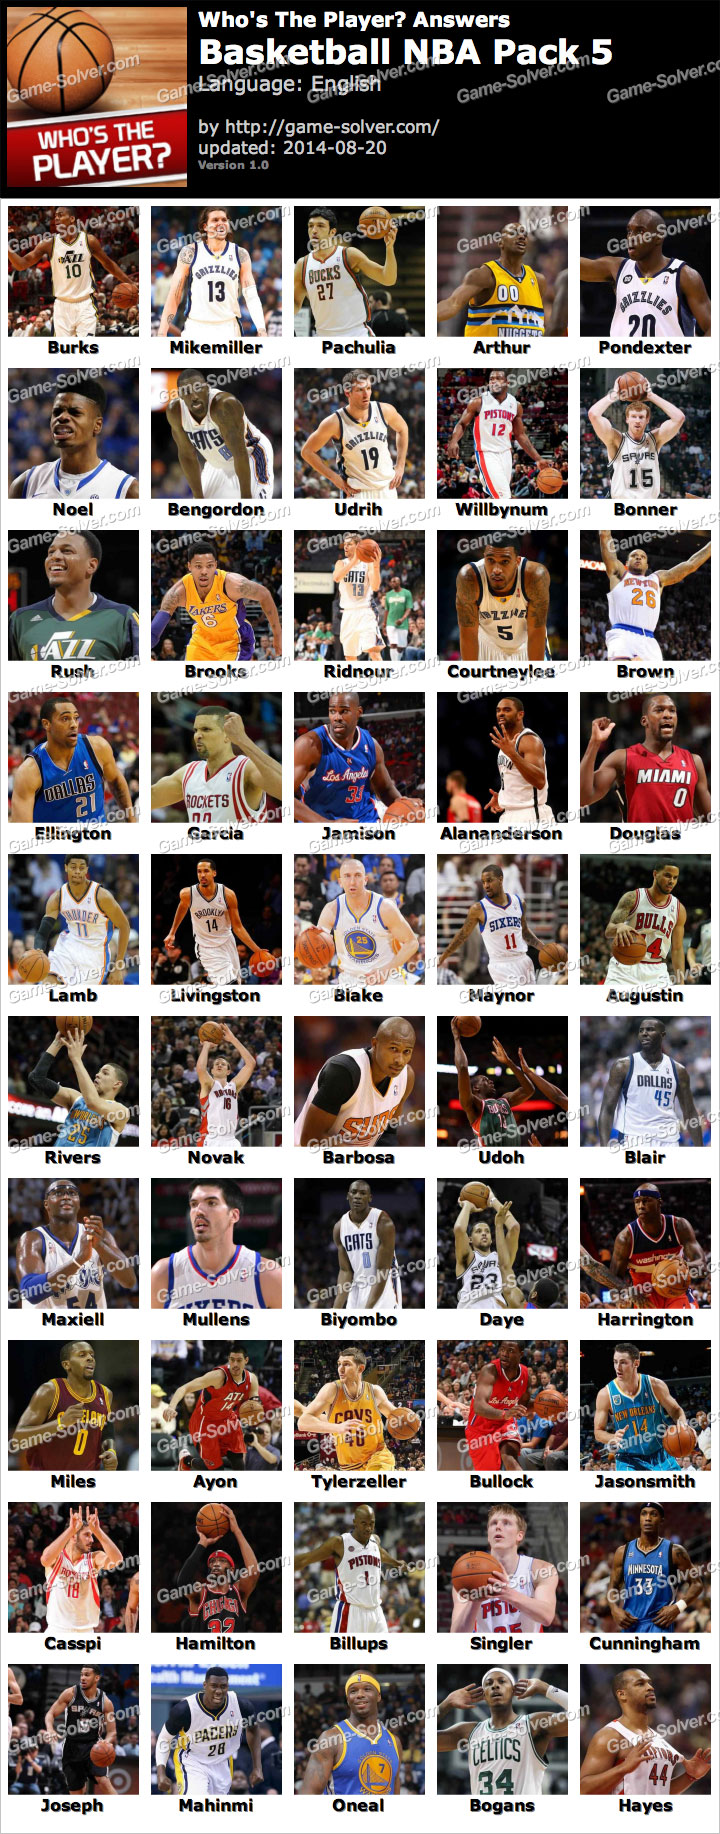 Who's The Player Basketball NBA Pack 5